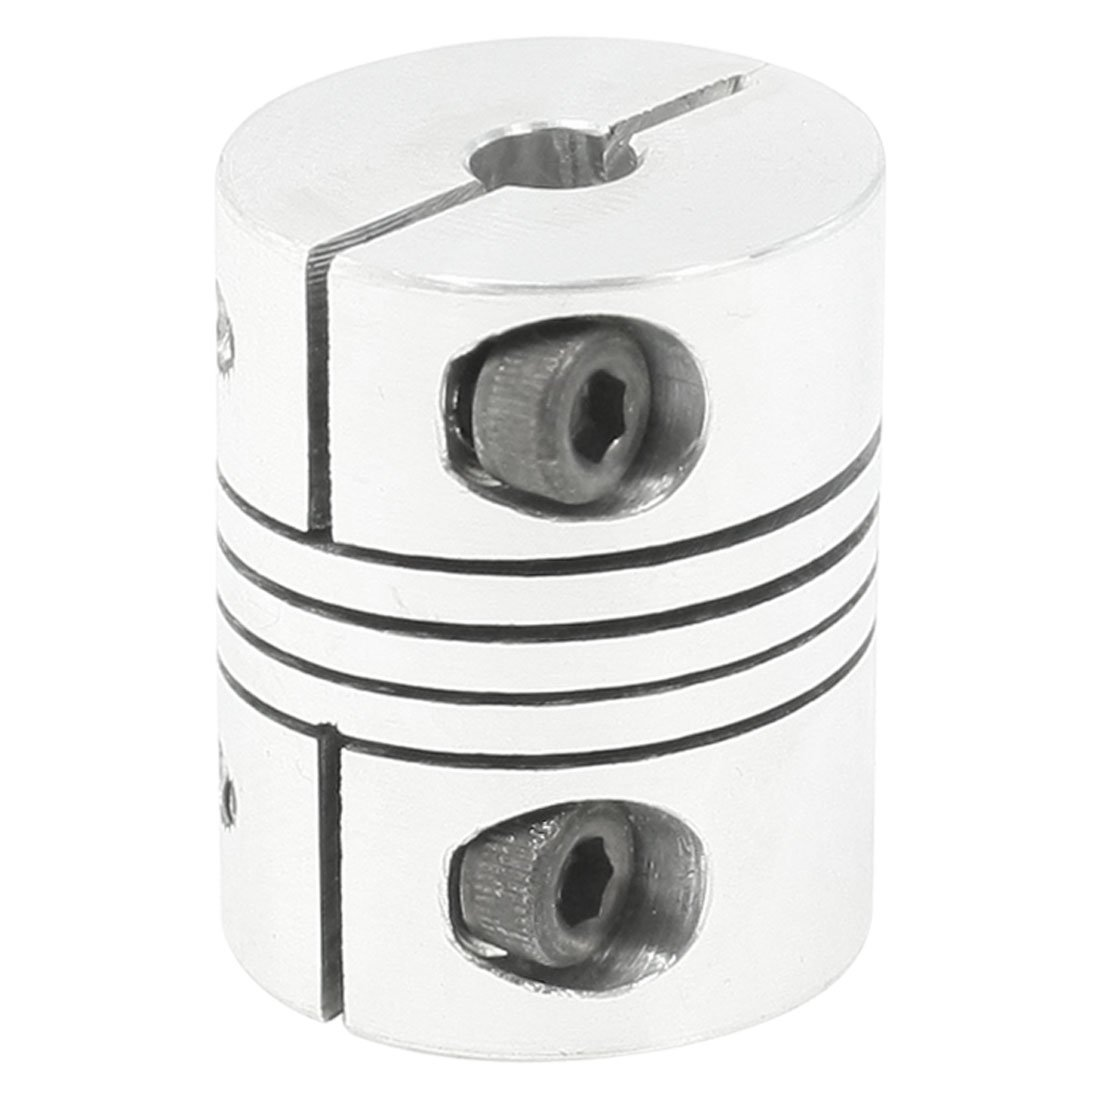 CNC Motor Shaft Coupler 5mm to 8mm Flexible Coupling 5mmx8mm flexible shaft coupling od18mmx25mm cnc stepper motor coupler connector 6 35 to 8mm